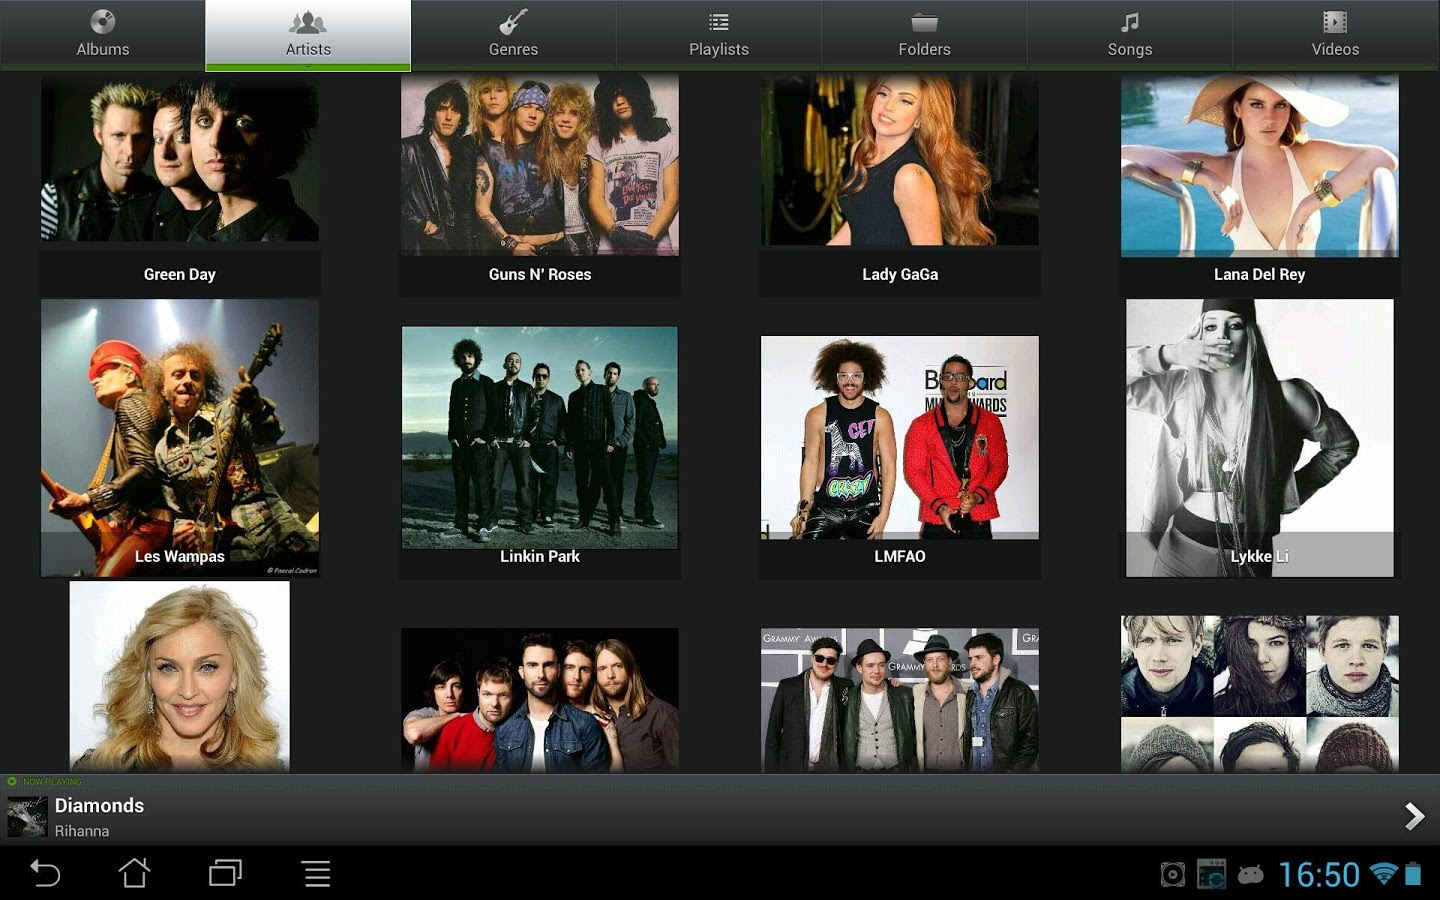 Descargar PlayerPro Music Player Full v2.85 .apk [Full] Android Tablet Móvil Apkingdom Download Zippyshare MEGA